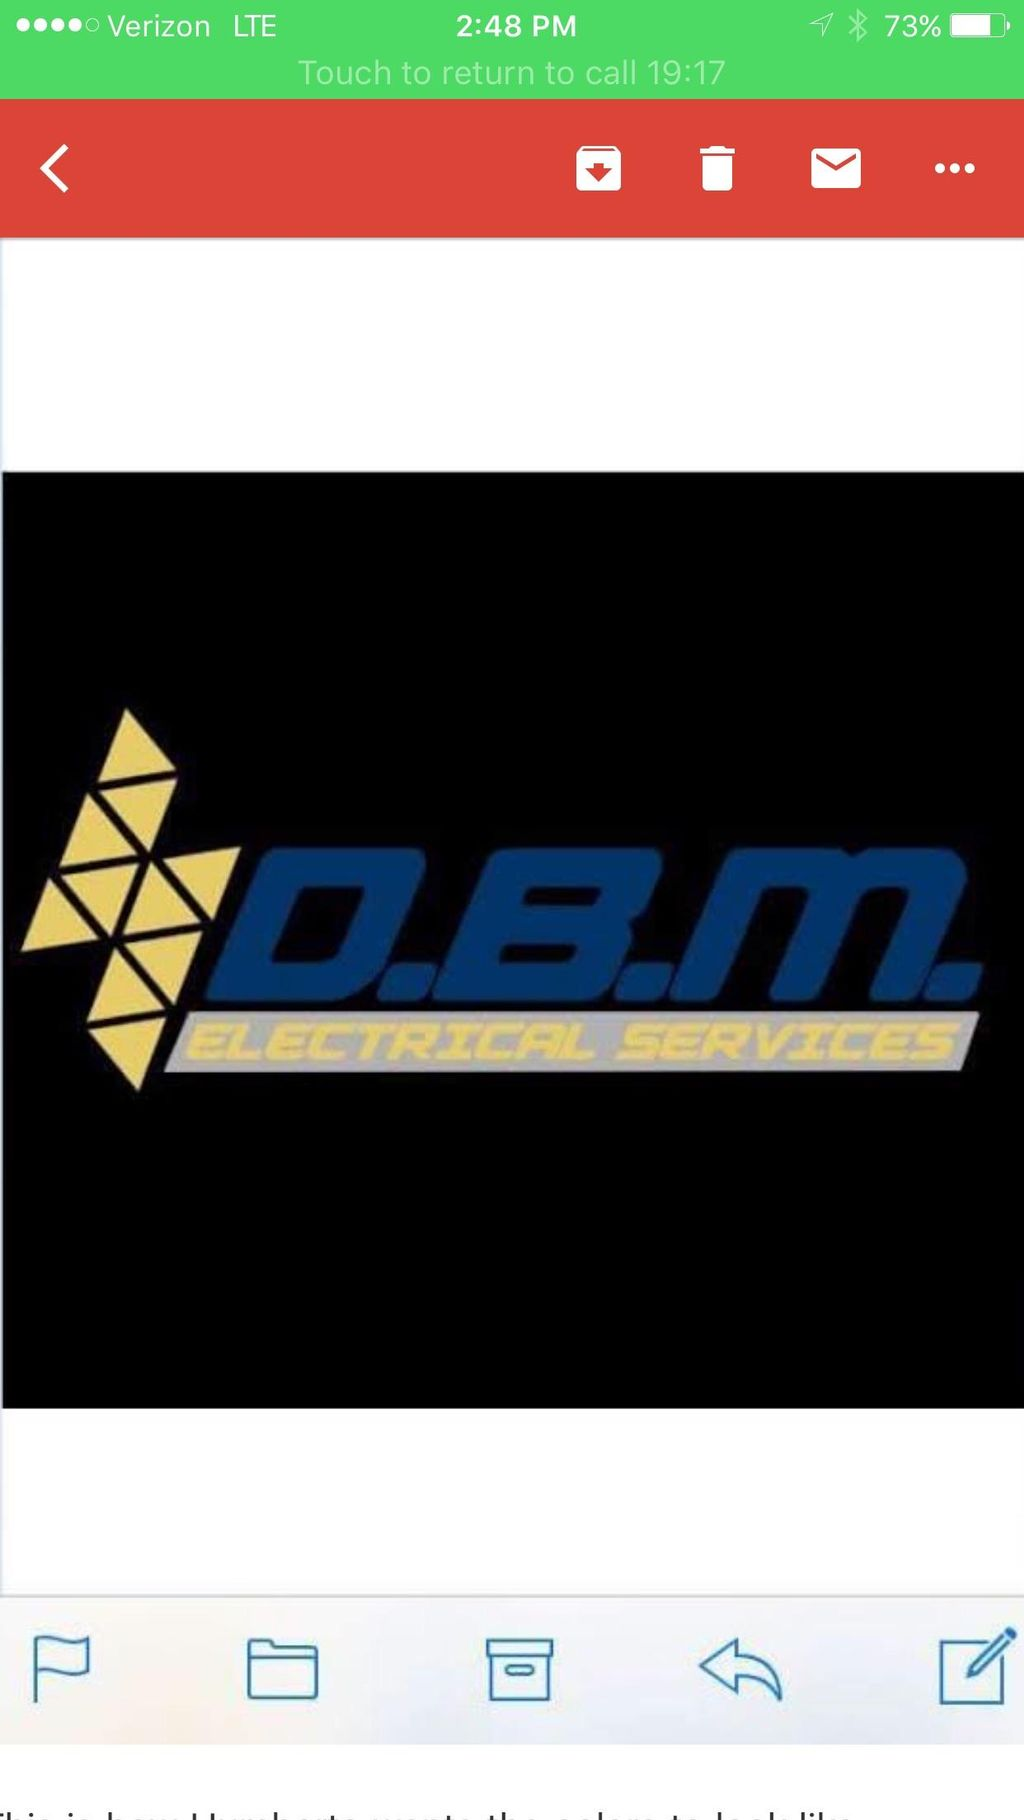 DBM Electrical Services